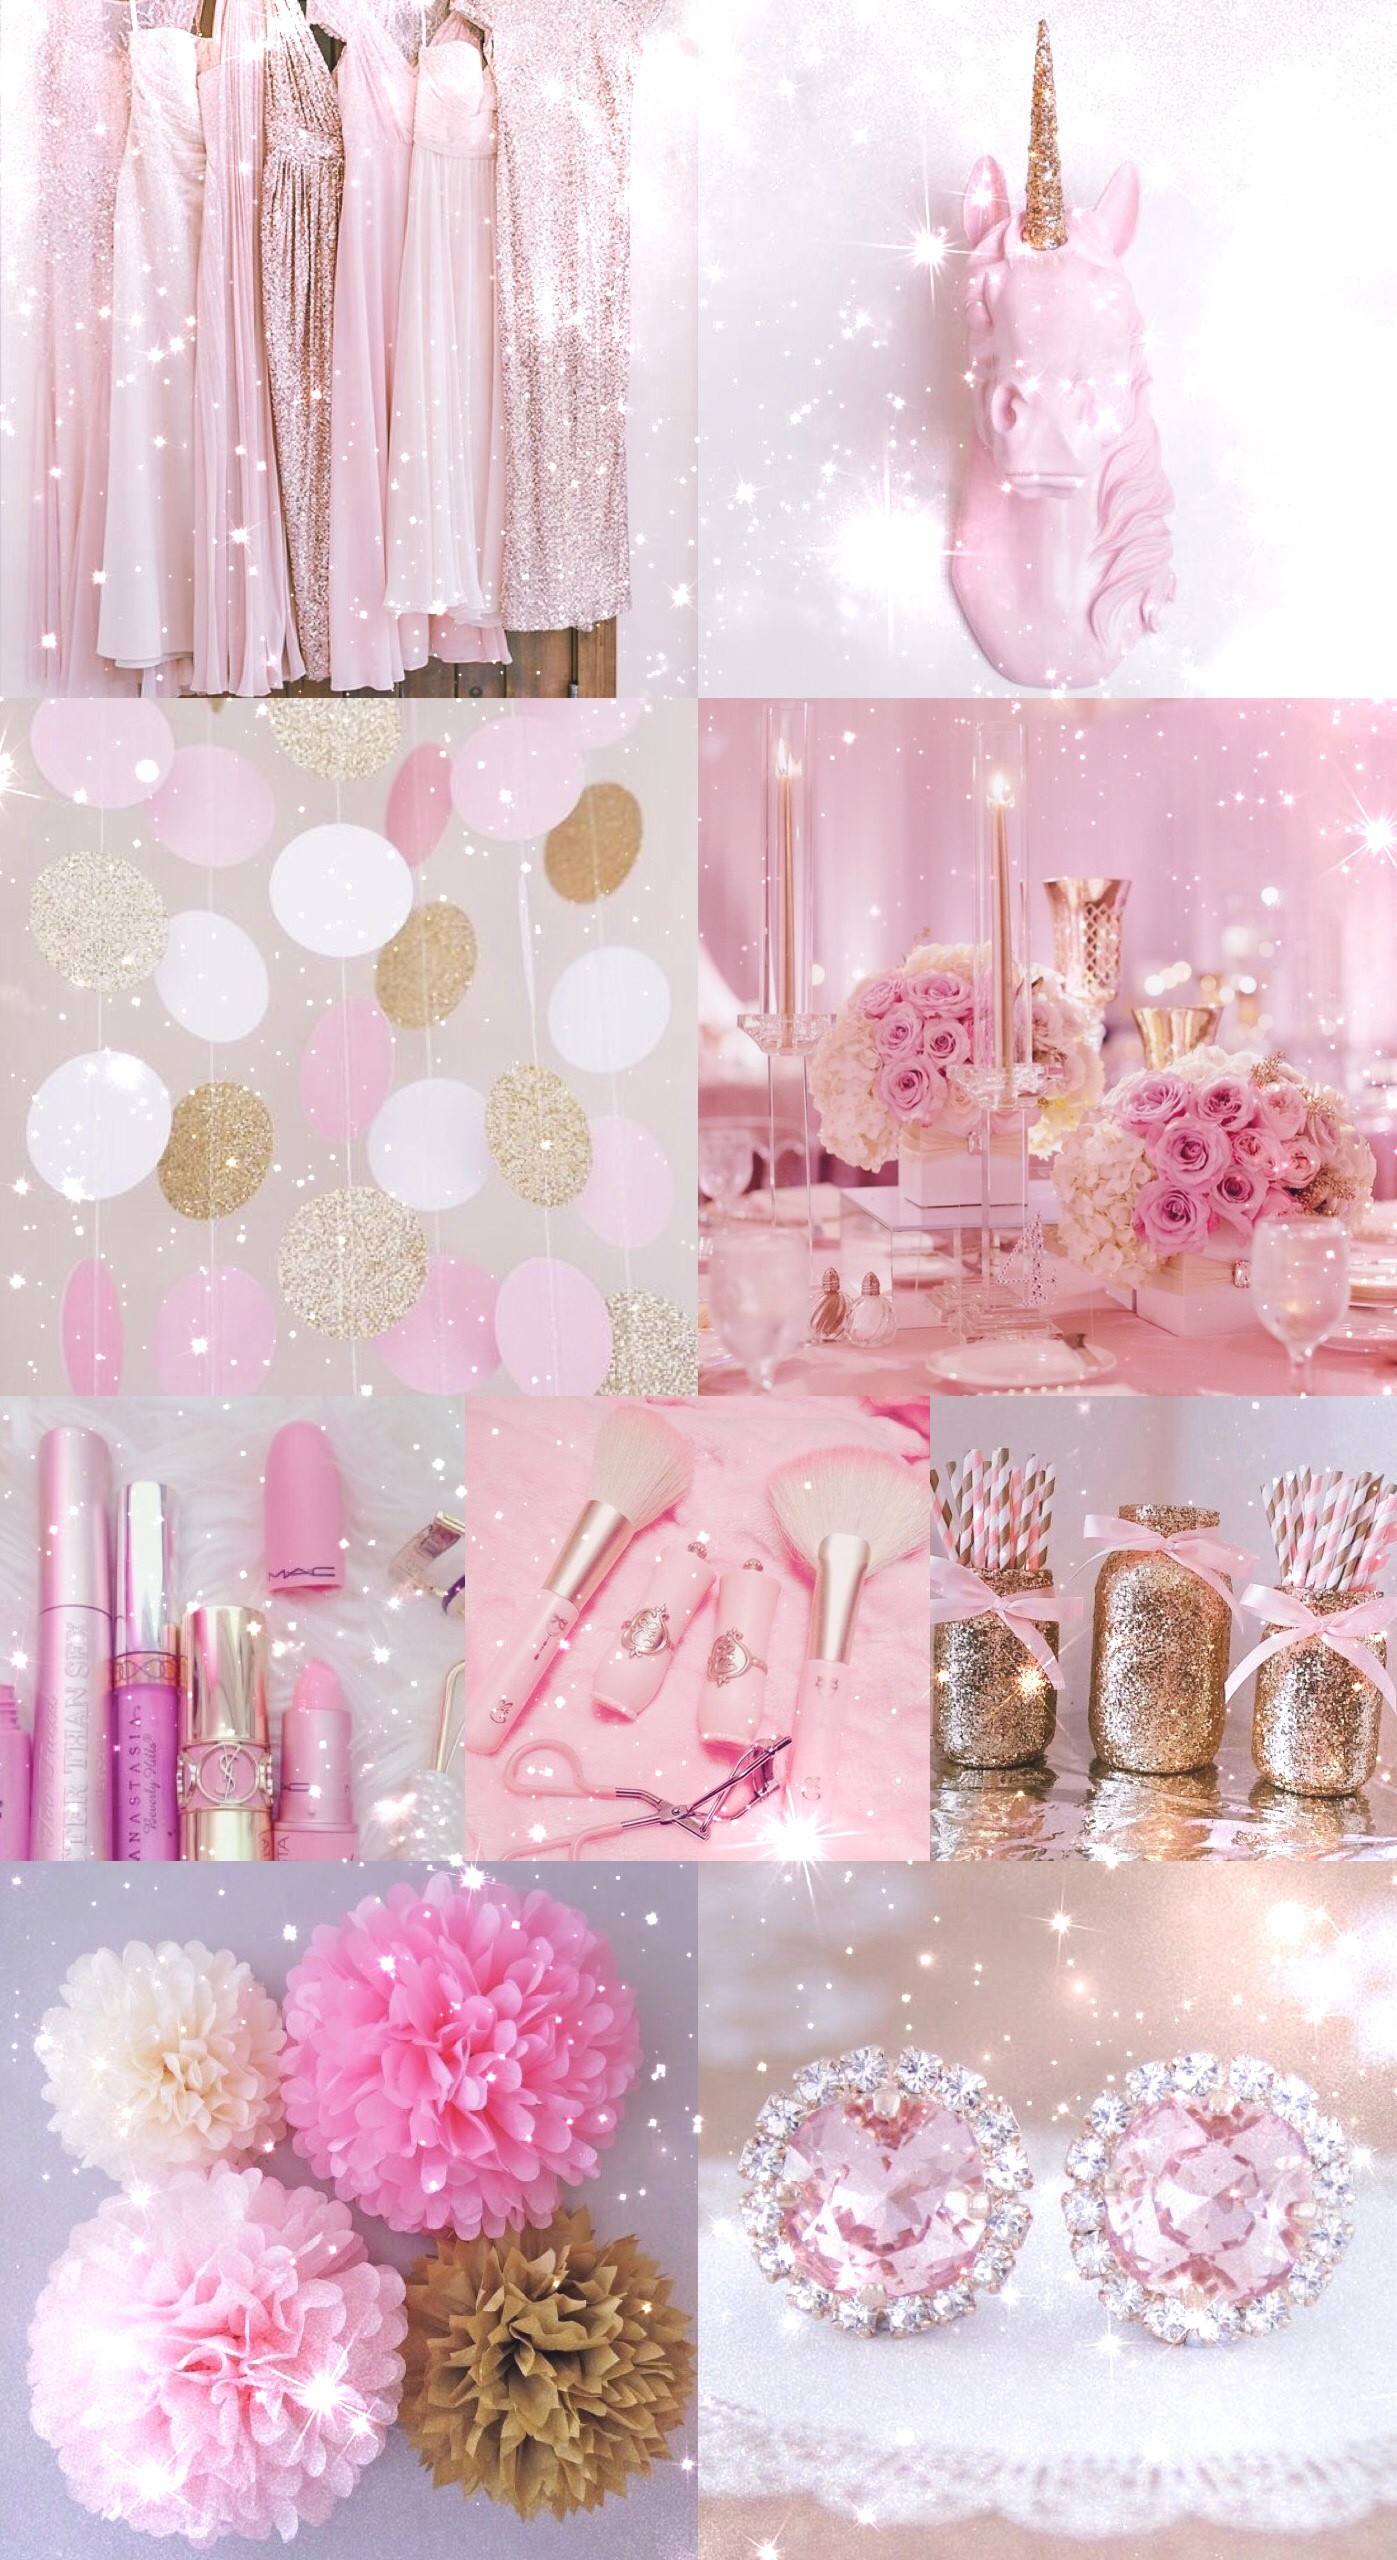 Hd Girly Iphone Wallpaper 74 Images